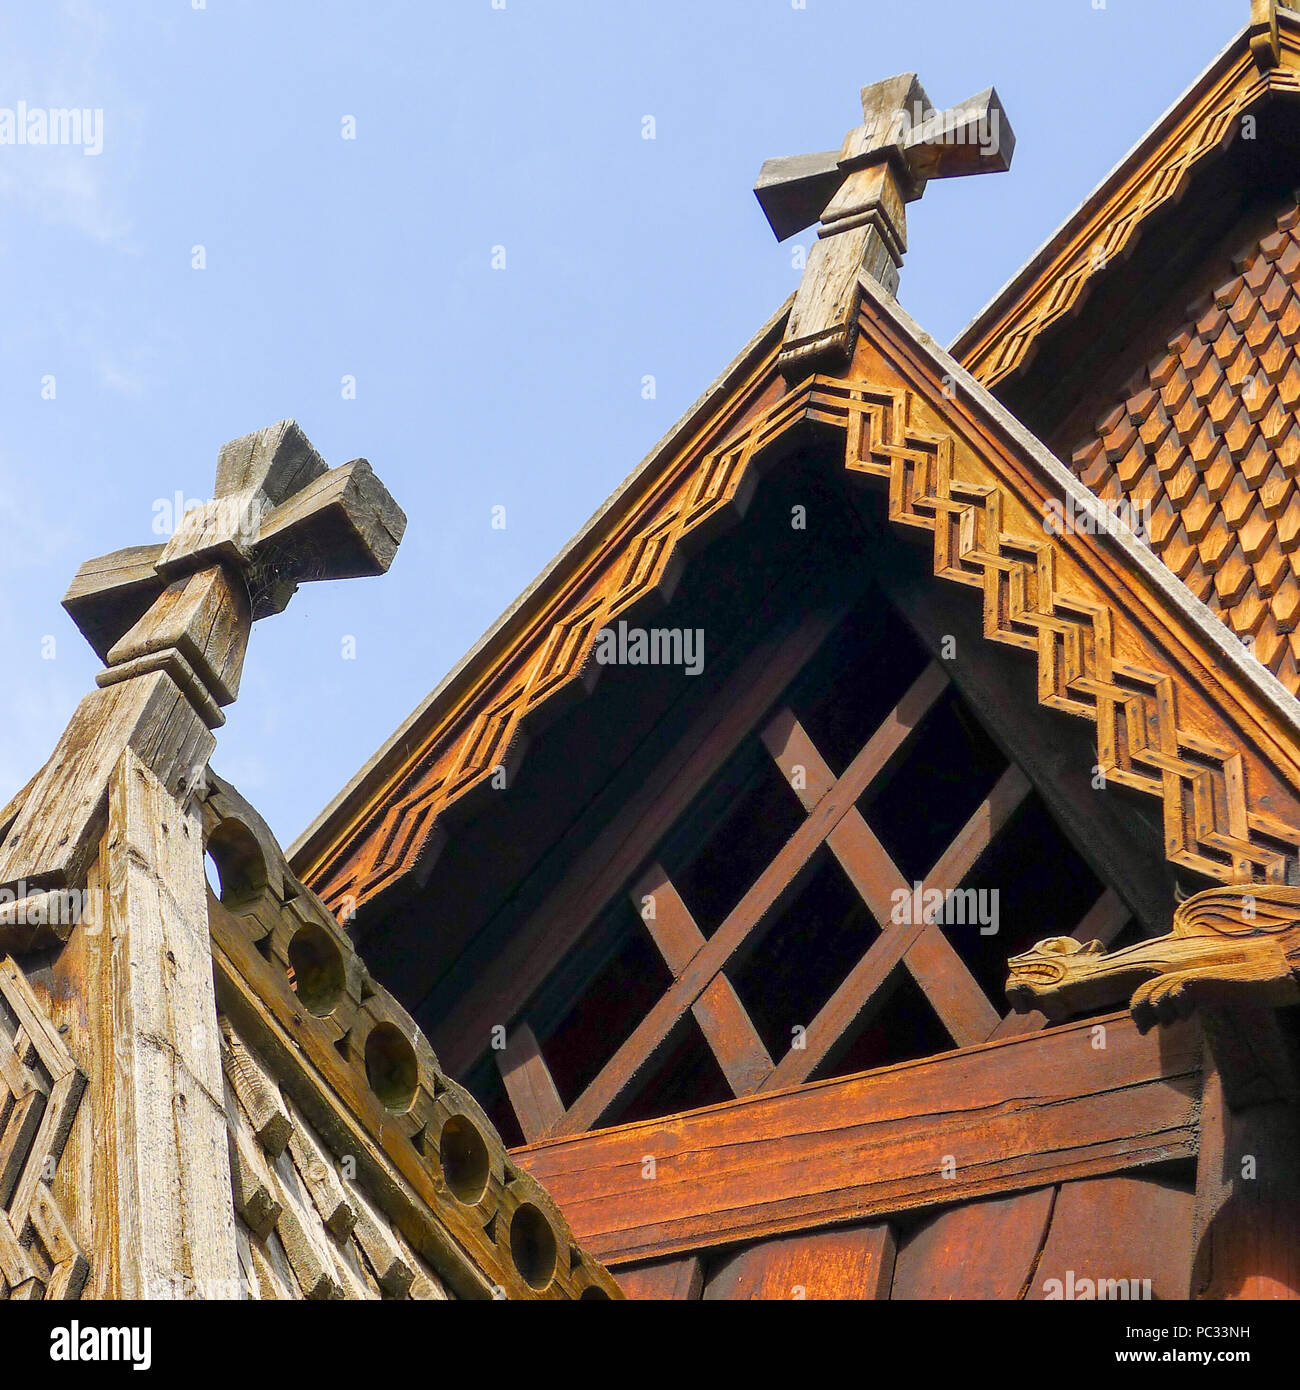 Detail of the roof of the Stave Church from Gol located at the Norsk Folkemuseum in Oslo, Norway. - Stock Image